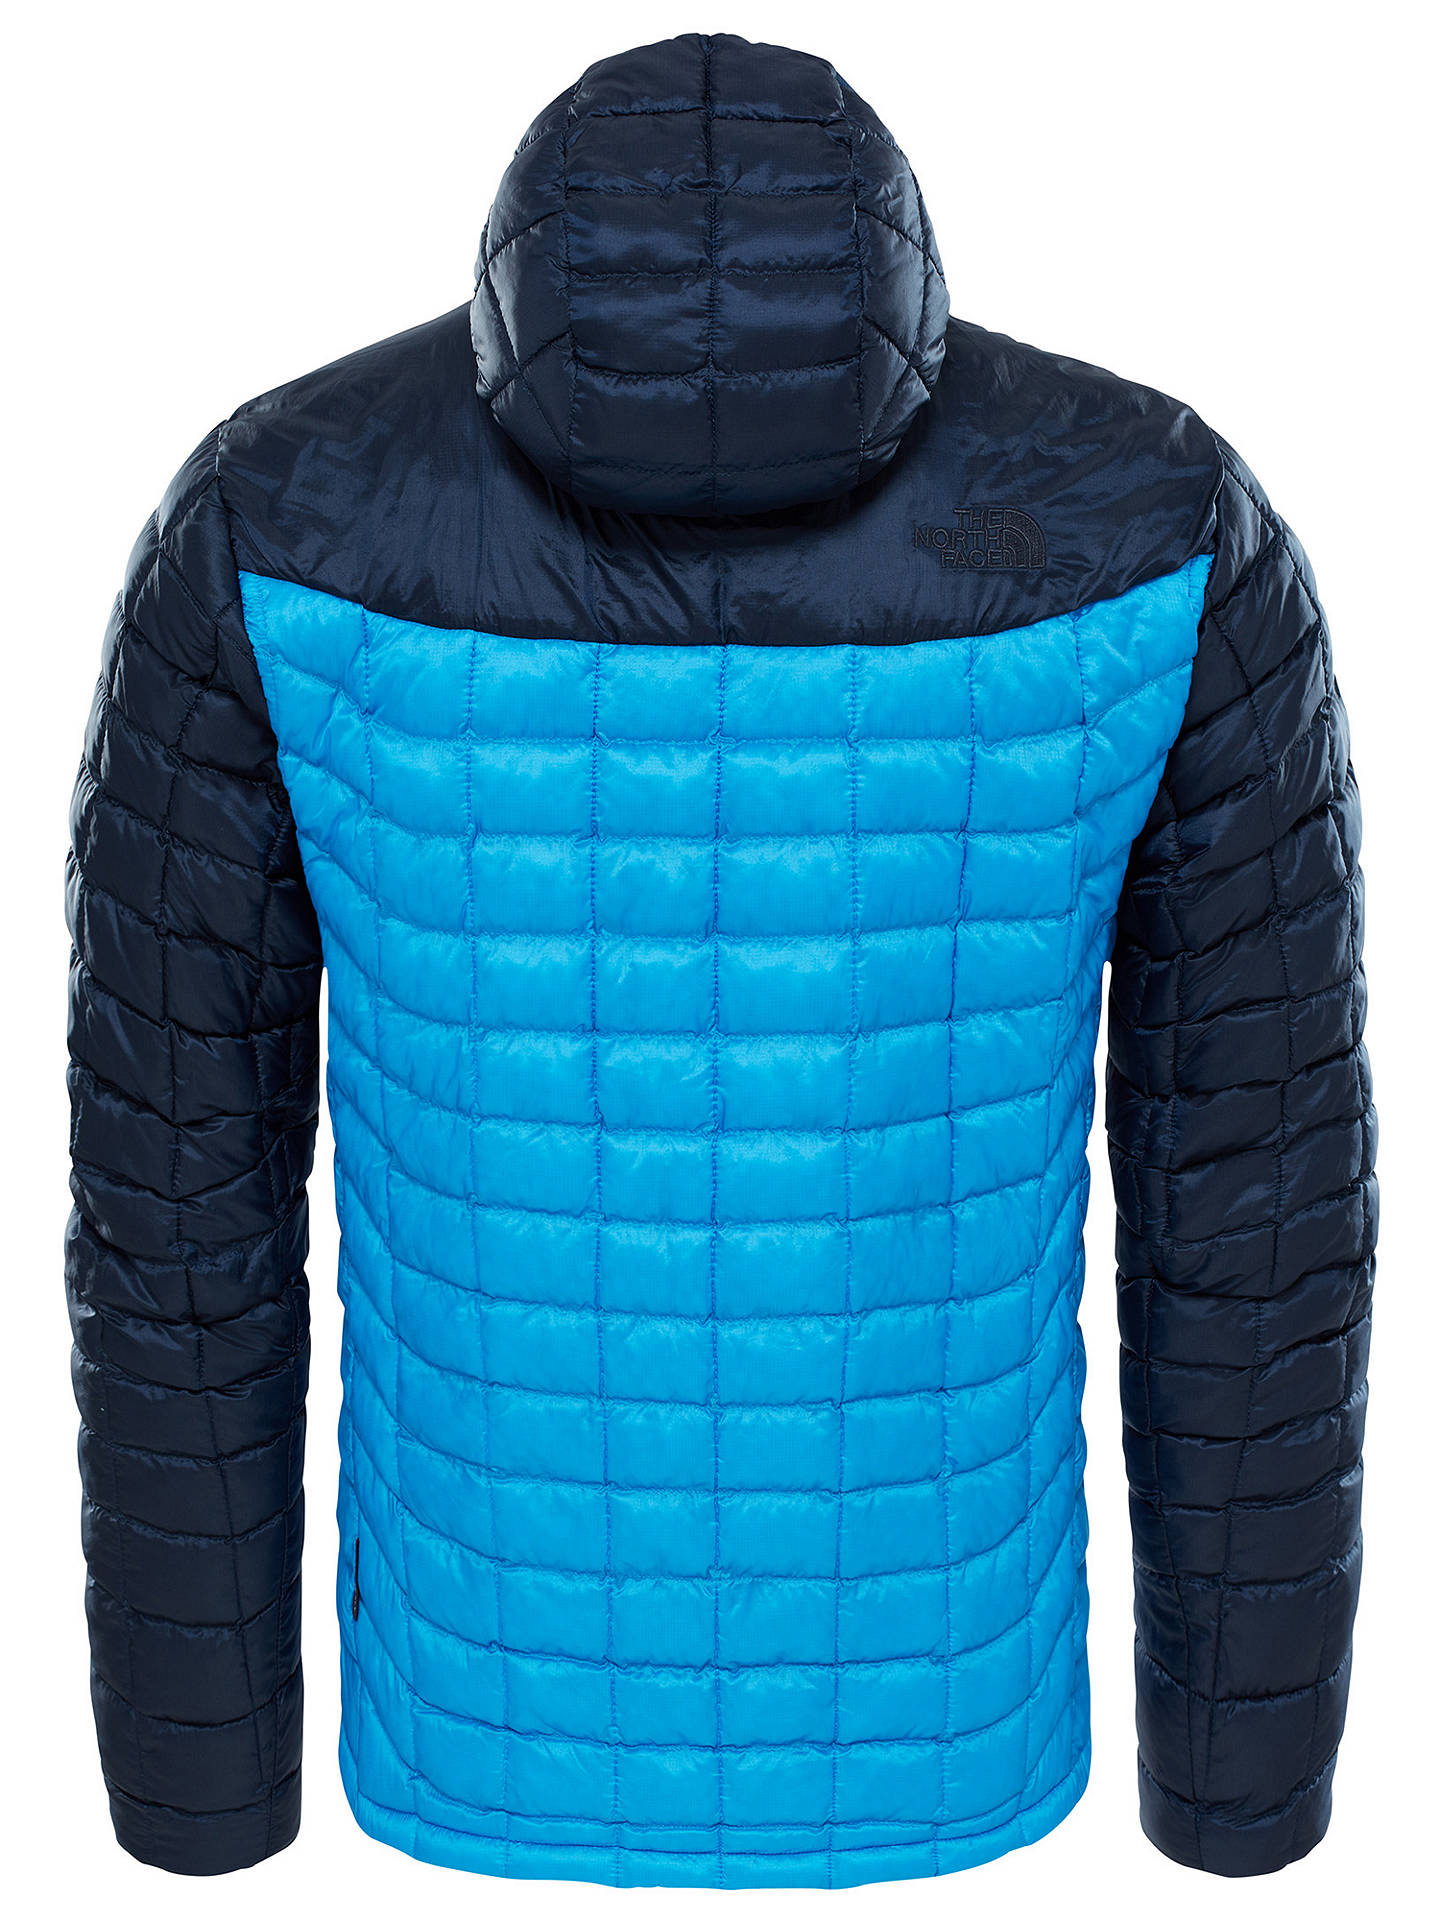 ebbc489586d3 The North Face Thermoball Hooded Insulated Men s Jacket at John ...